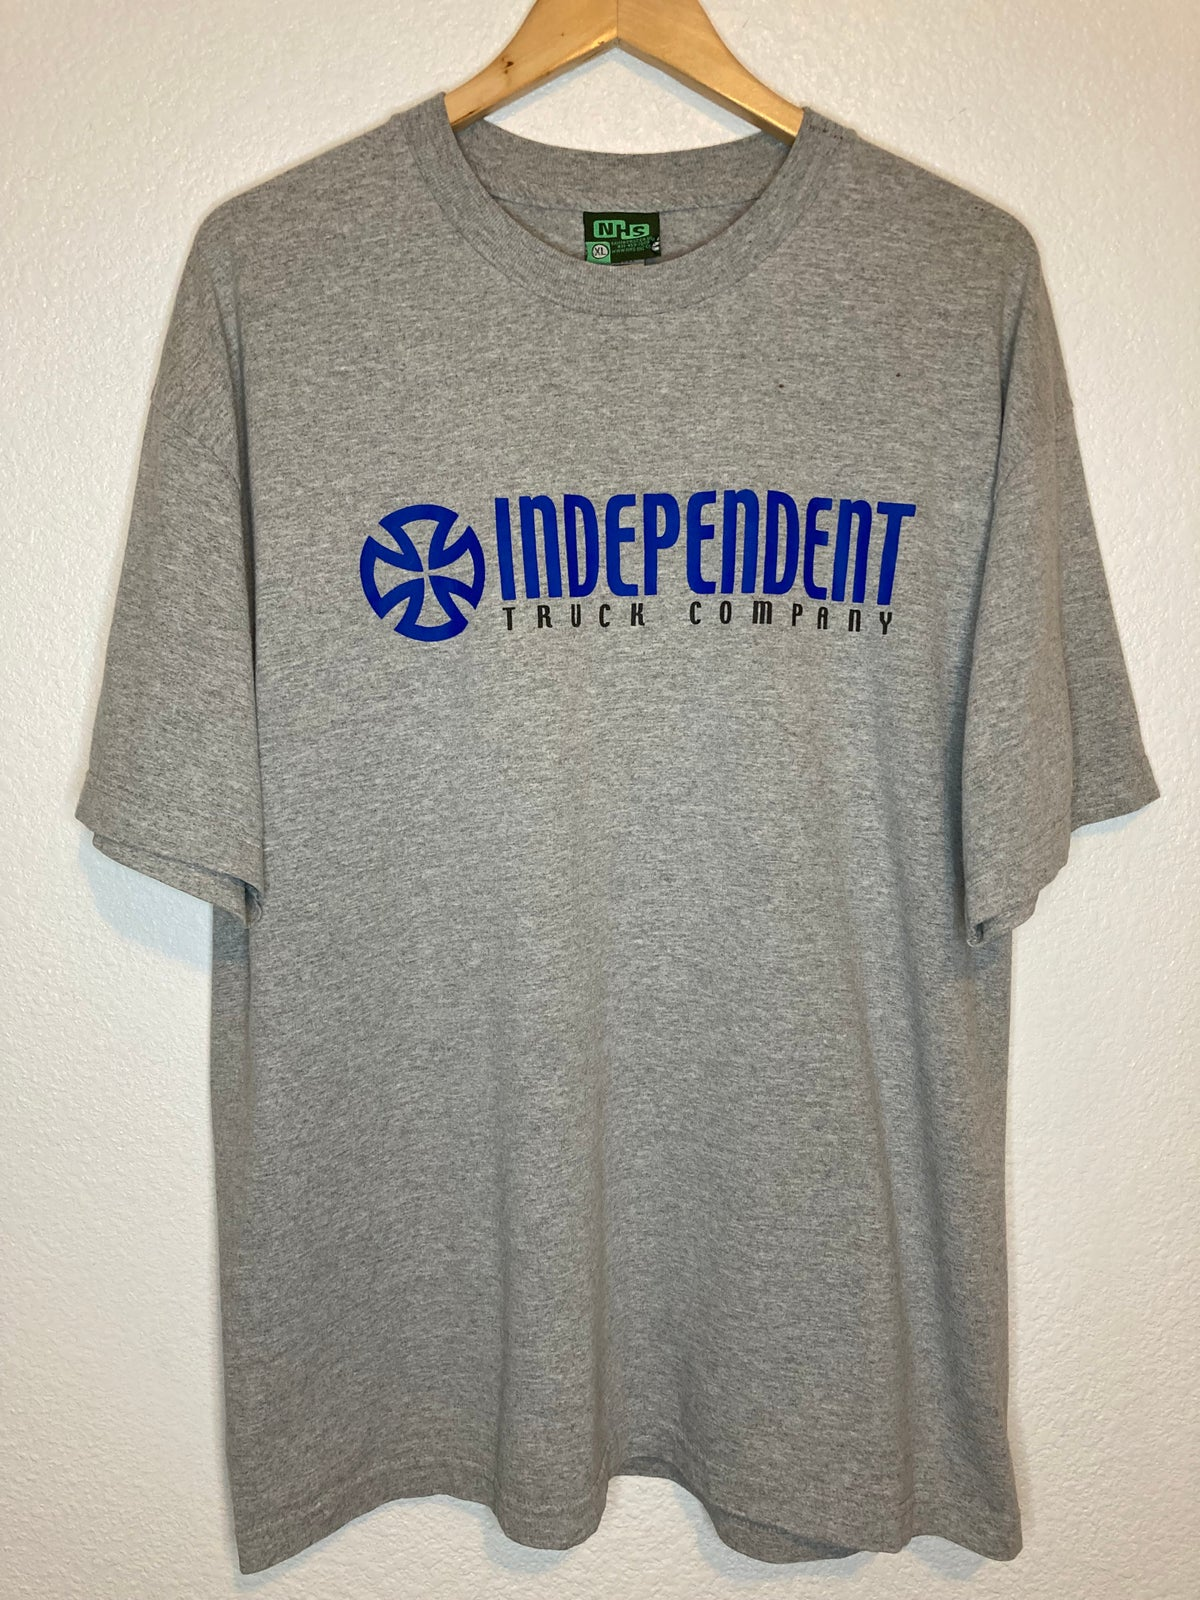 Late 90's Independent Truck Co. Tee